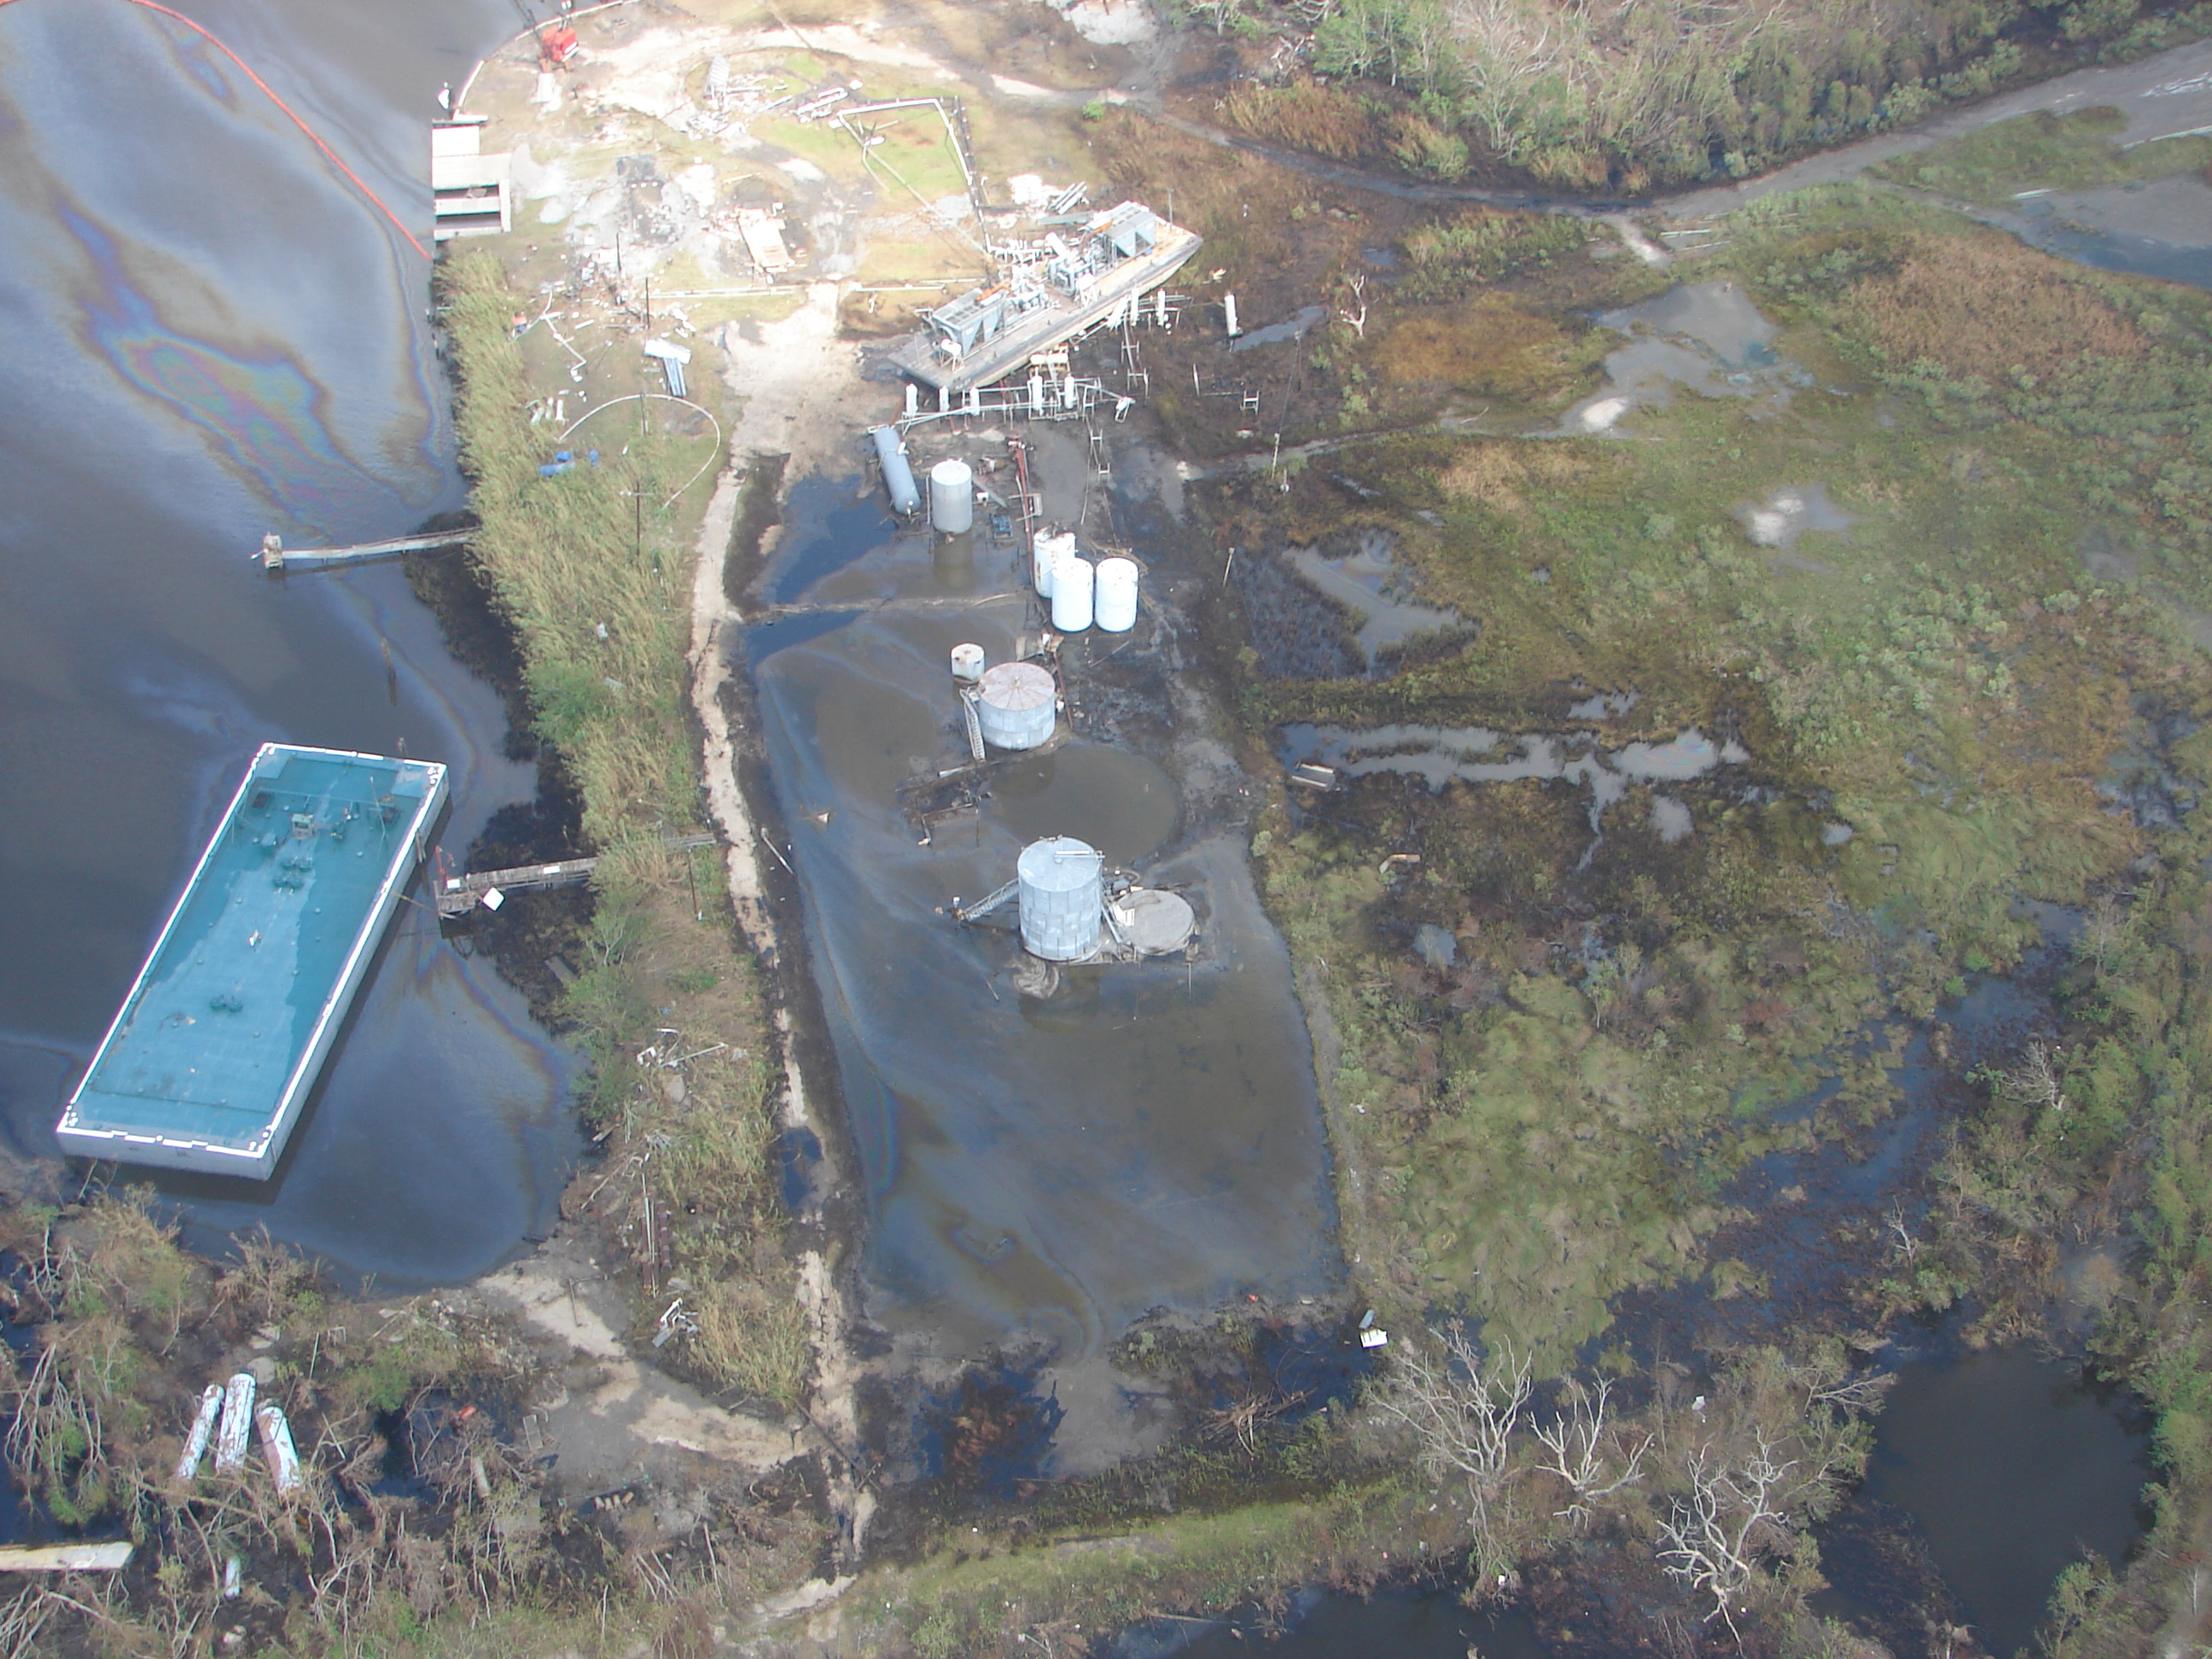 Aerial view of damaged energy facility.